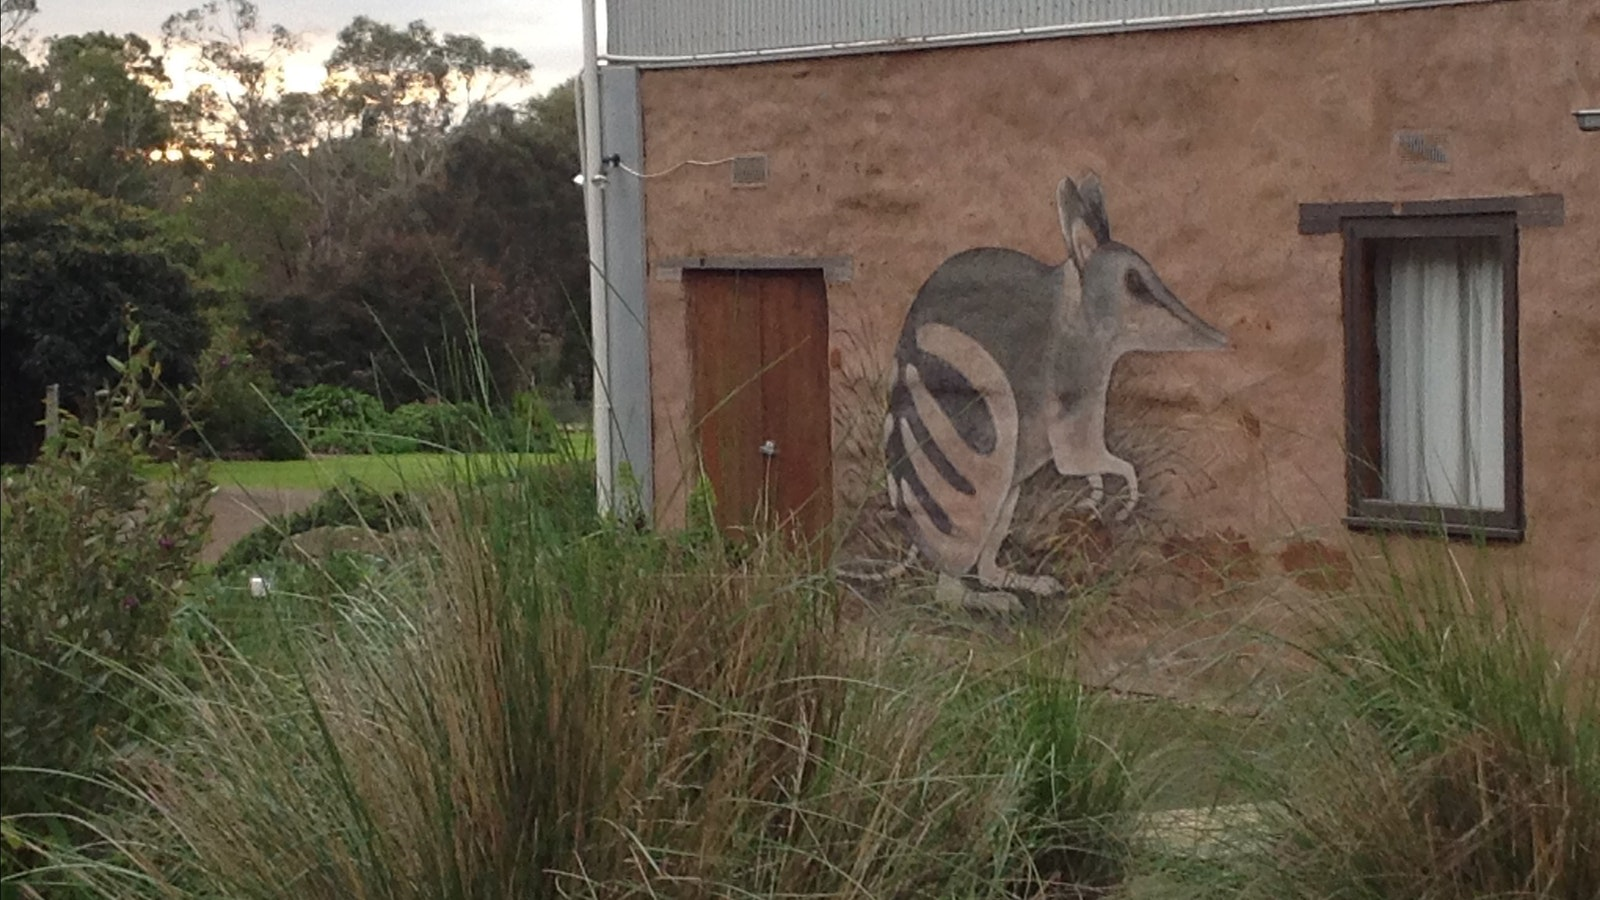 Maginiccent HIRL mural by Renowned local wildlife artist Roger Edwards